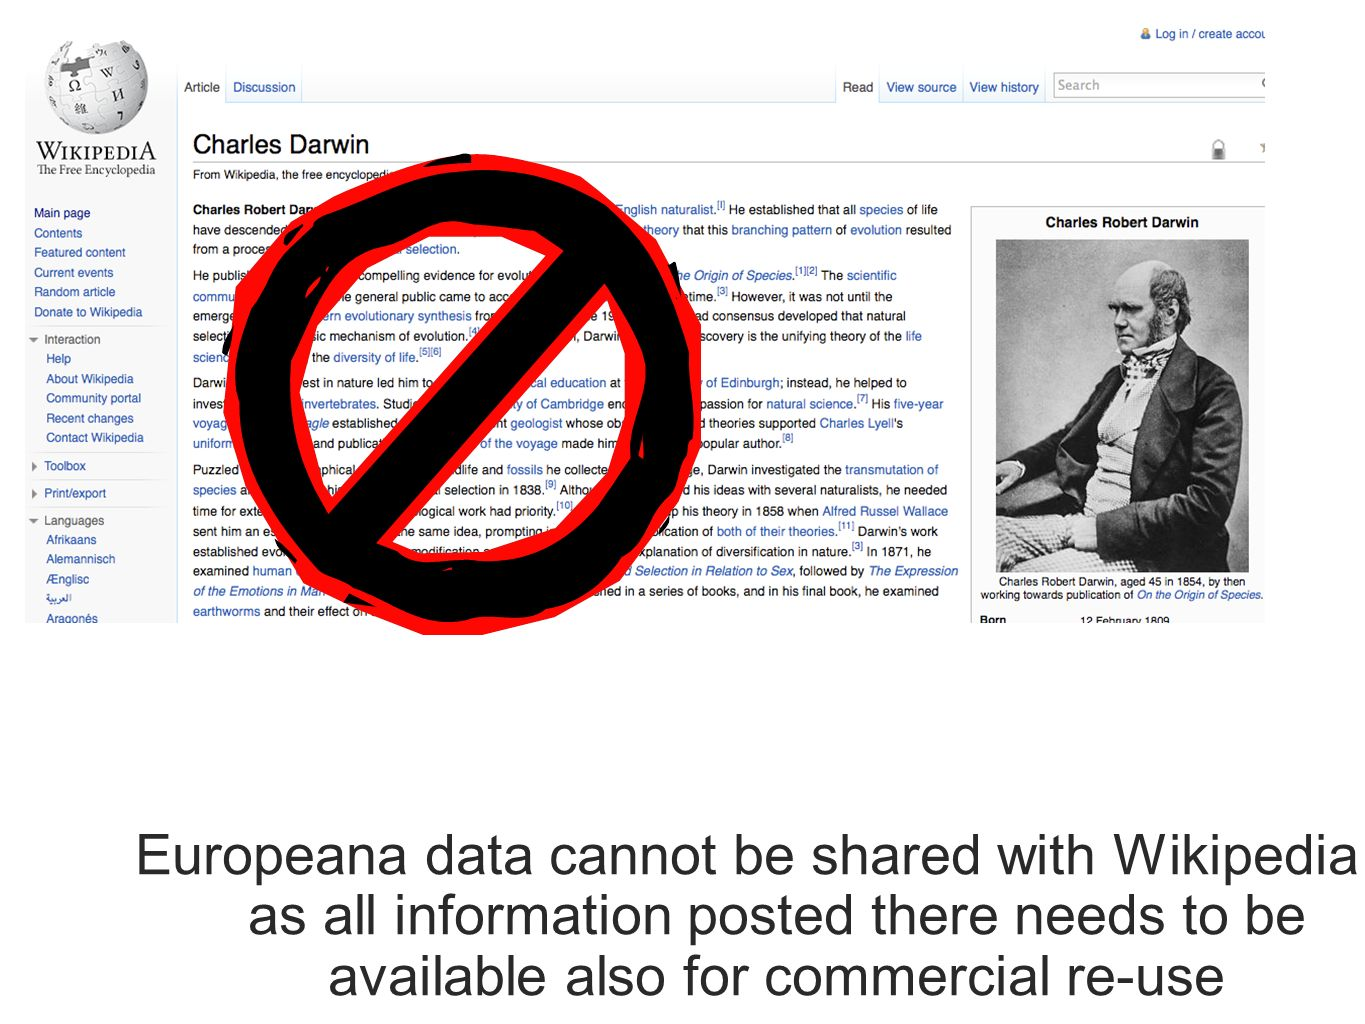 Europeana data cannot be shared with Wikipedia as all information posted there needs to be available also for commercial re-use